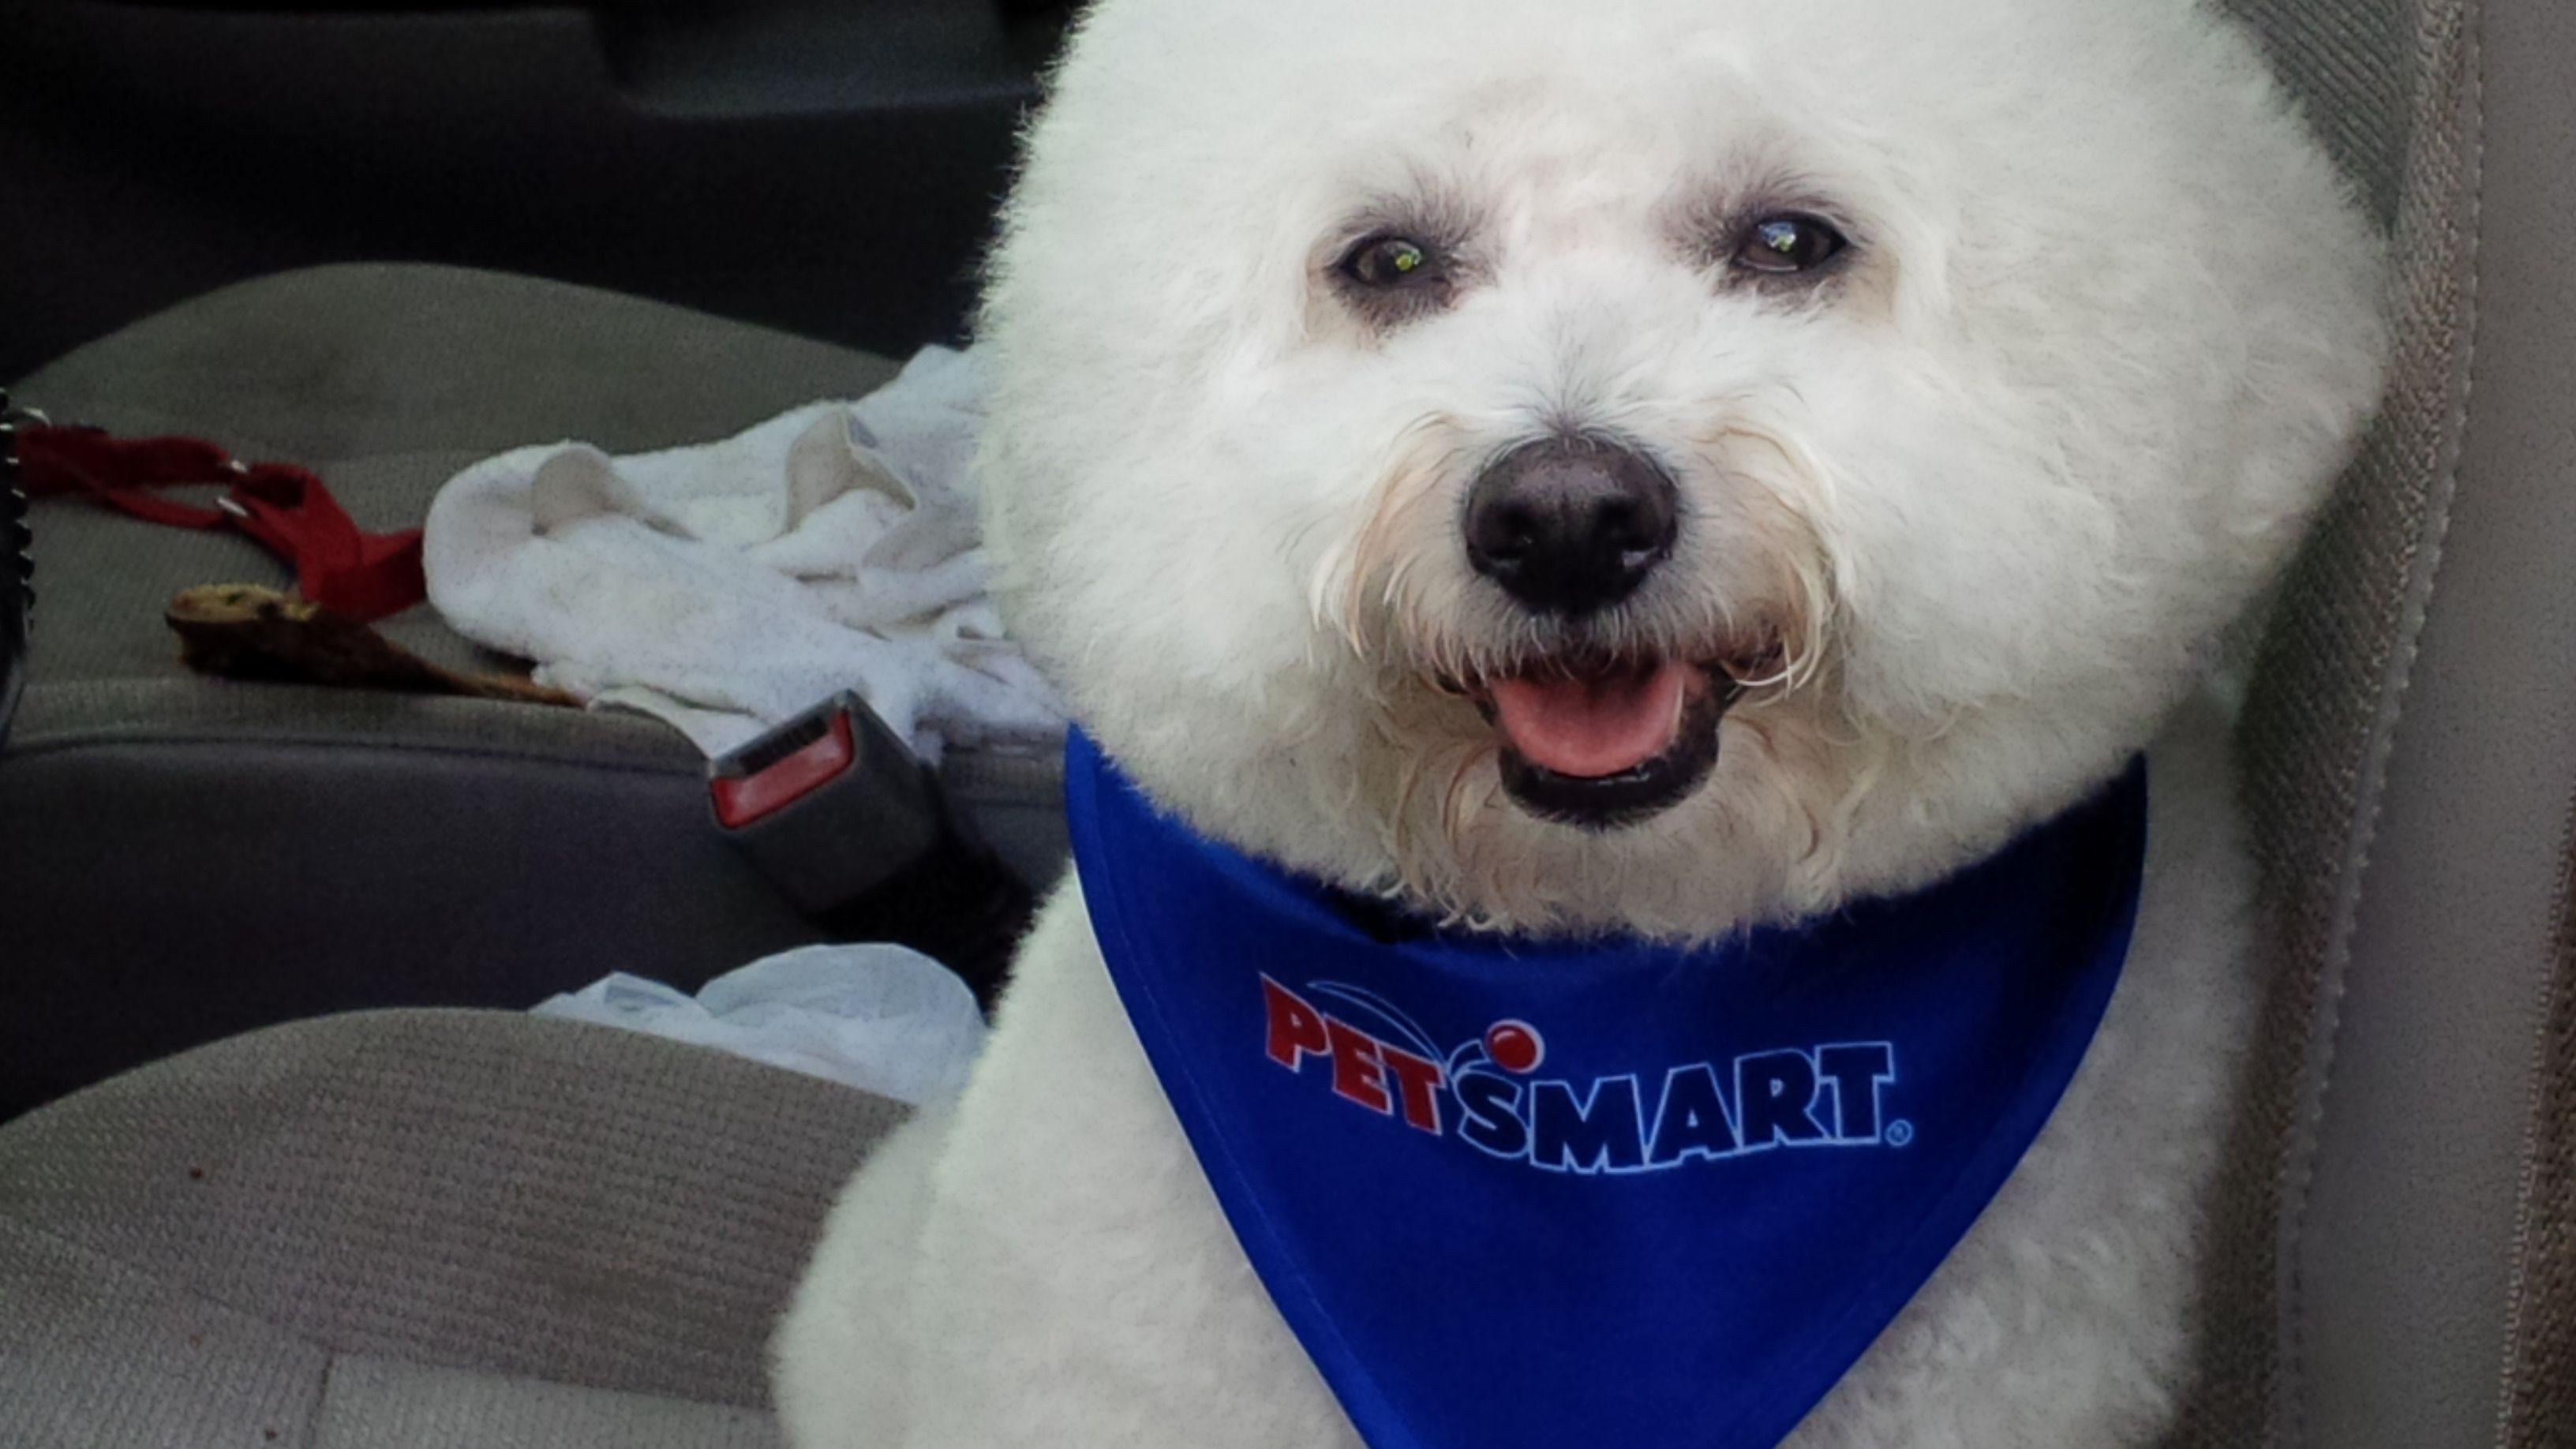 Petsmart at Howell Mill Bichon, Petsmart, Dogs